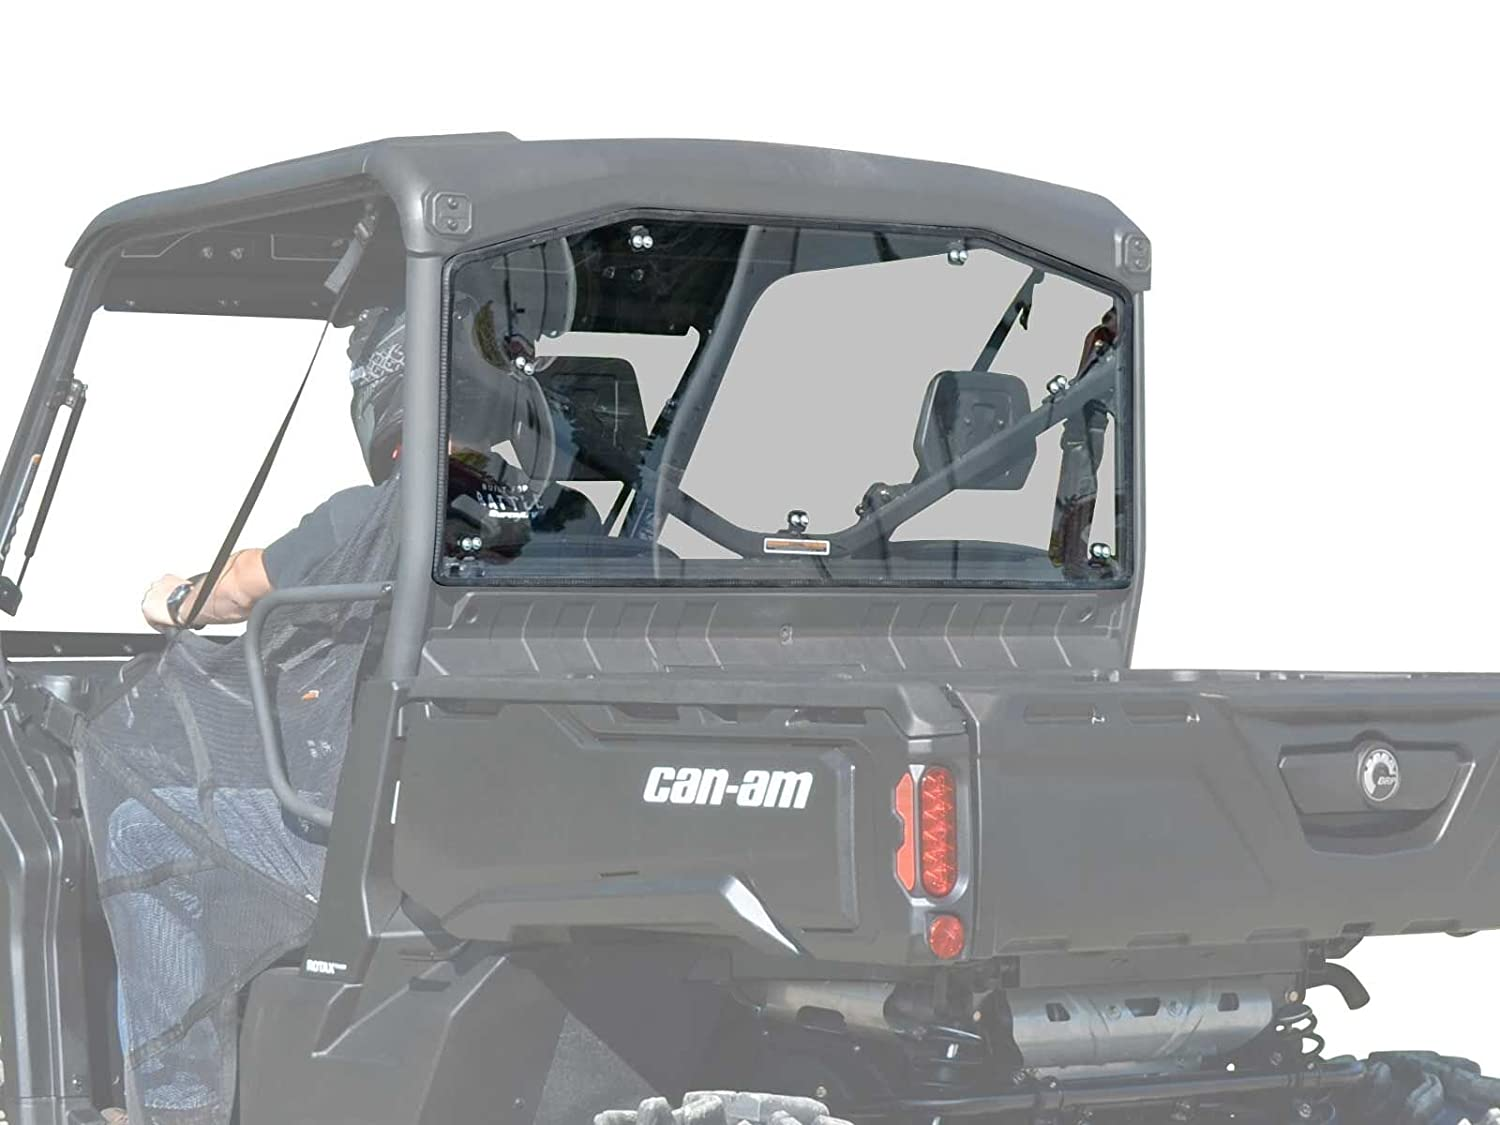 SuperATV Can-Am Defender Heavy Duty Rear Windshield (2016+) - Clear Standard Polycarbonate - Easy to Install! SuperATV.com